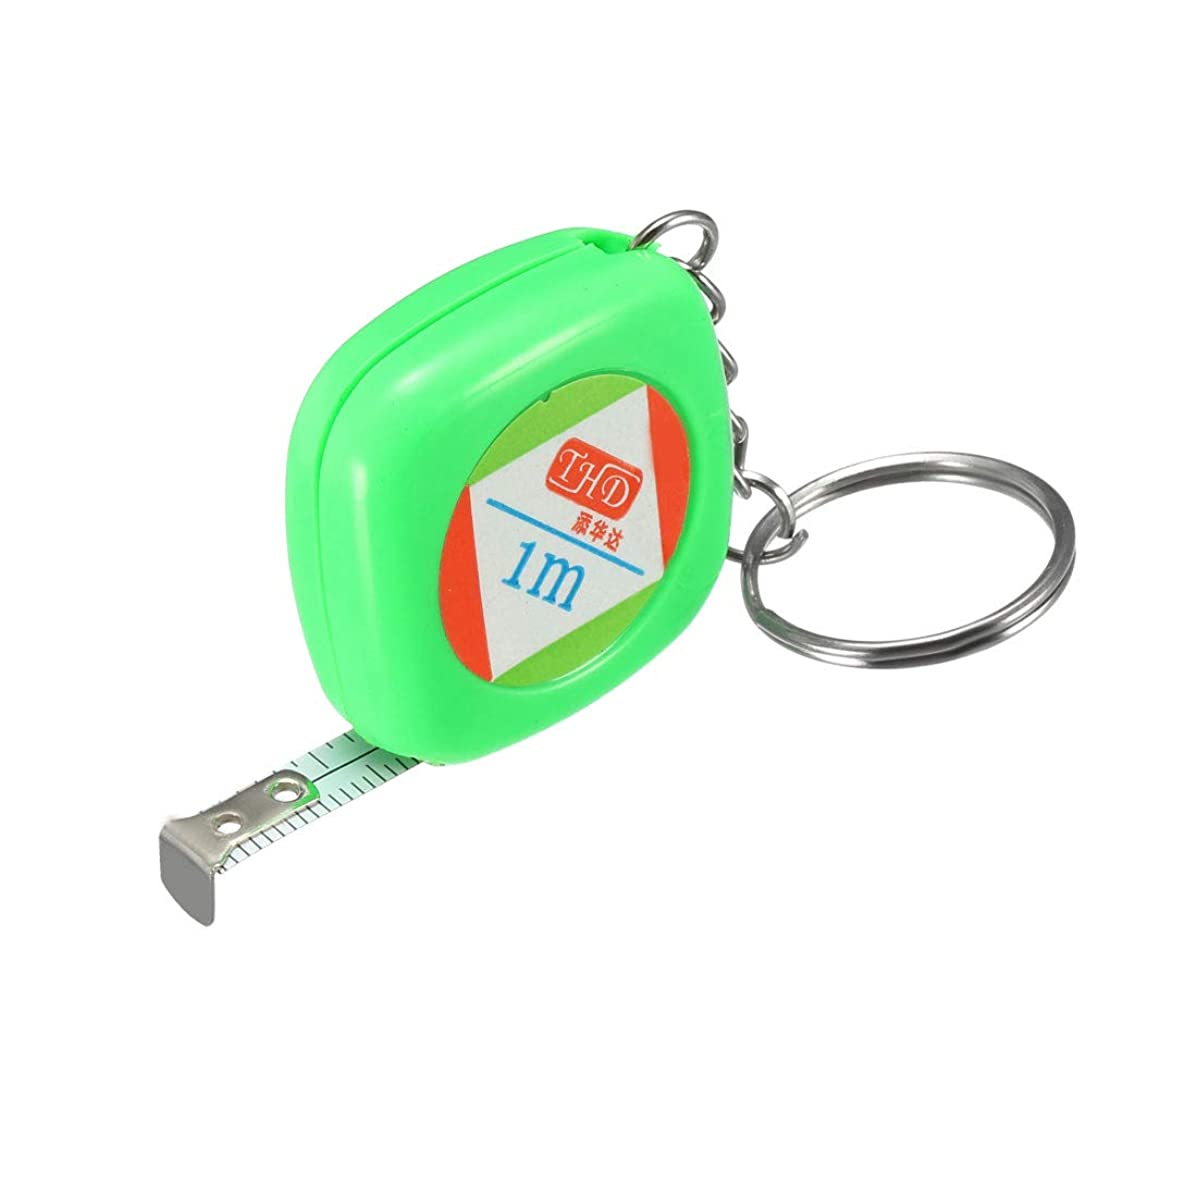 uxcell 39 Inch Measuring Tape Measure for Tailor Sewing 1M, Pack of 1, Green